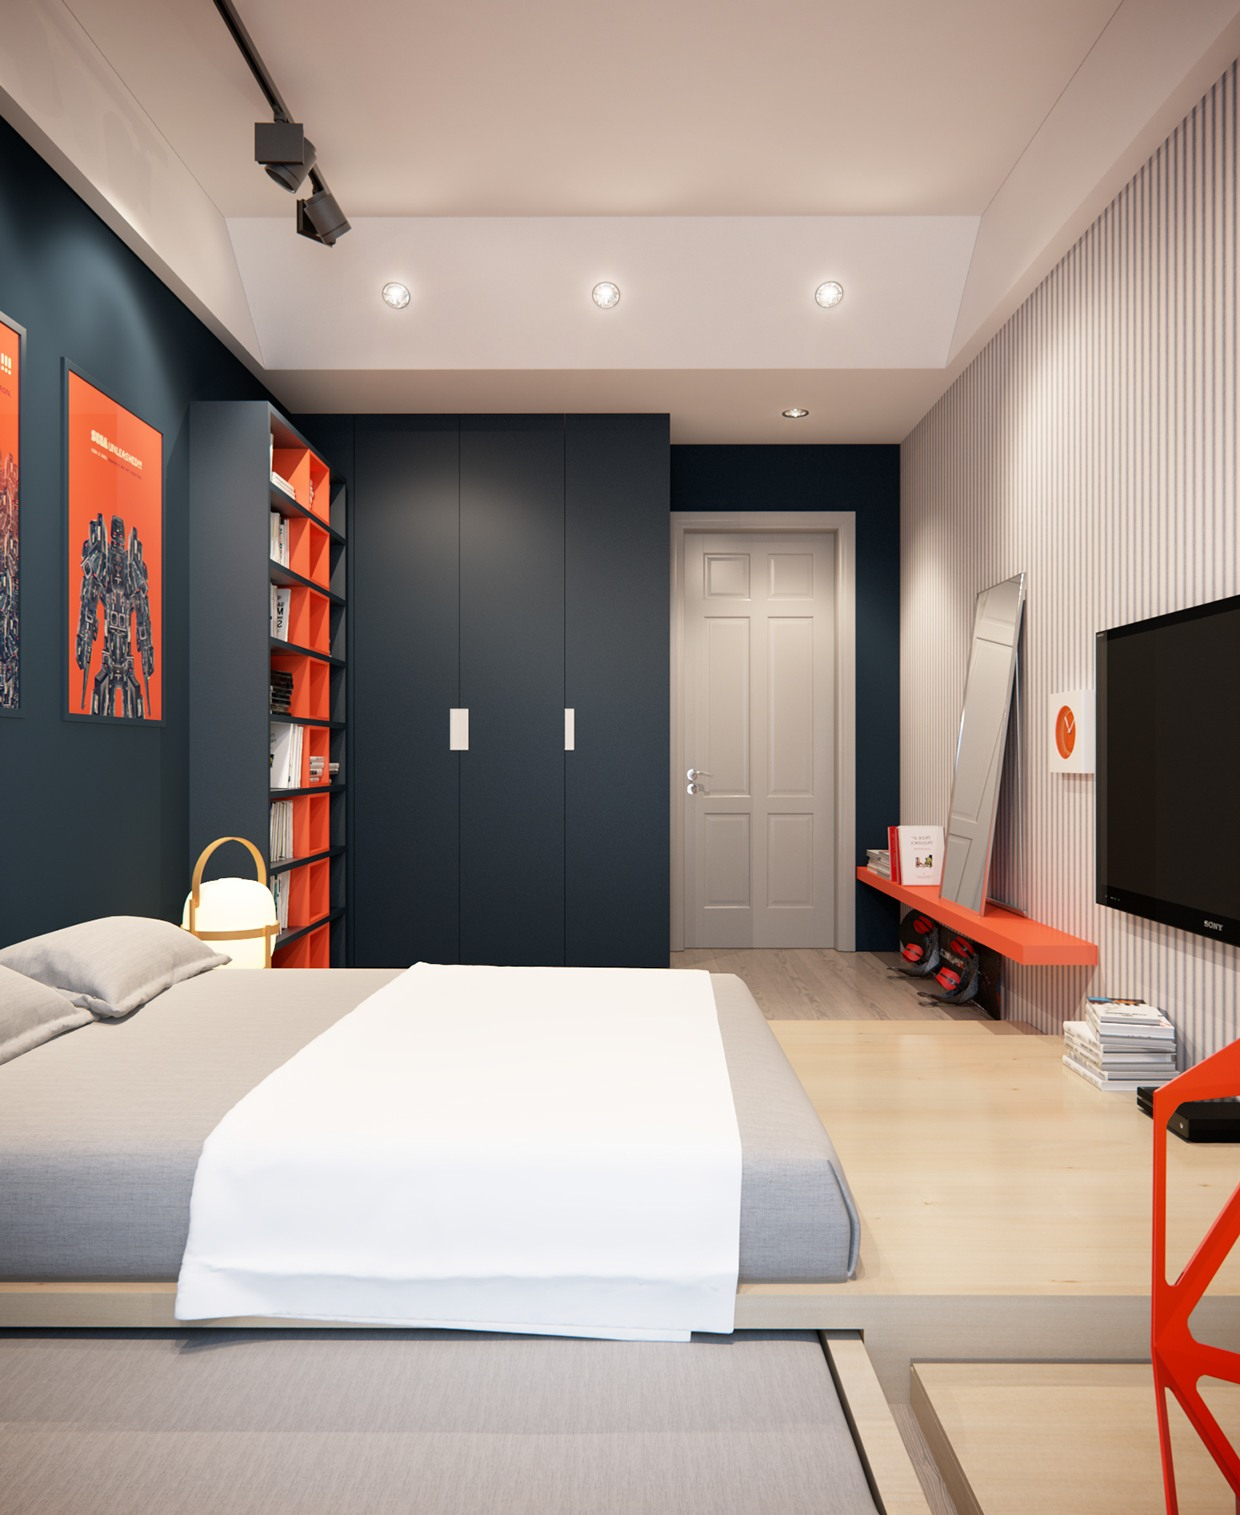 Boys bedroom design interior design ideas for Modern house interior design bedroom